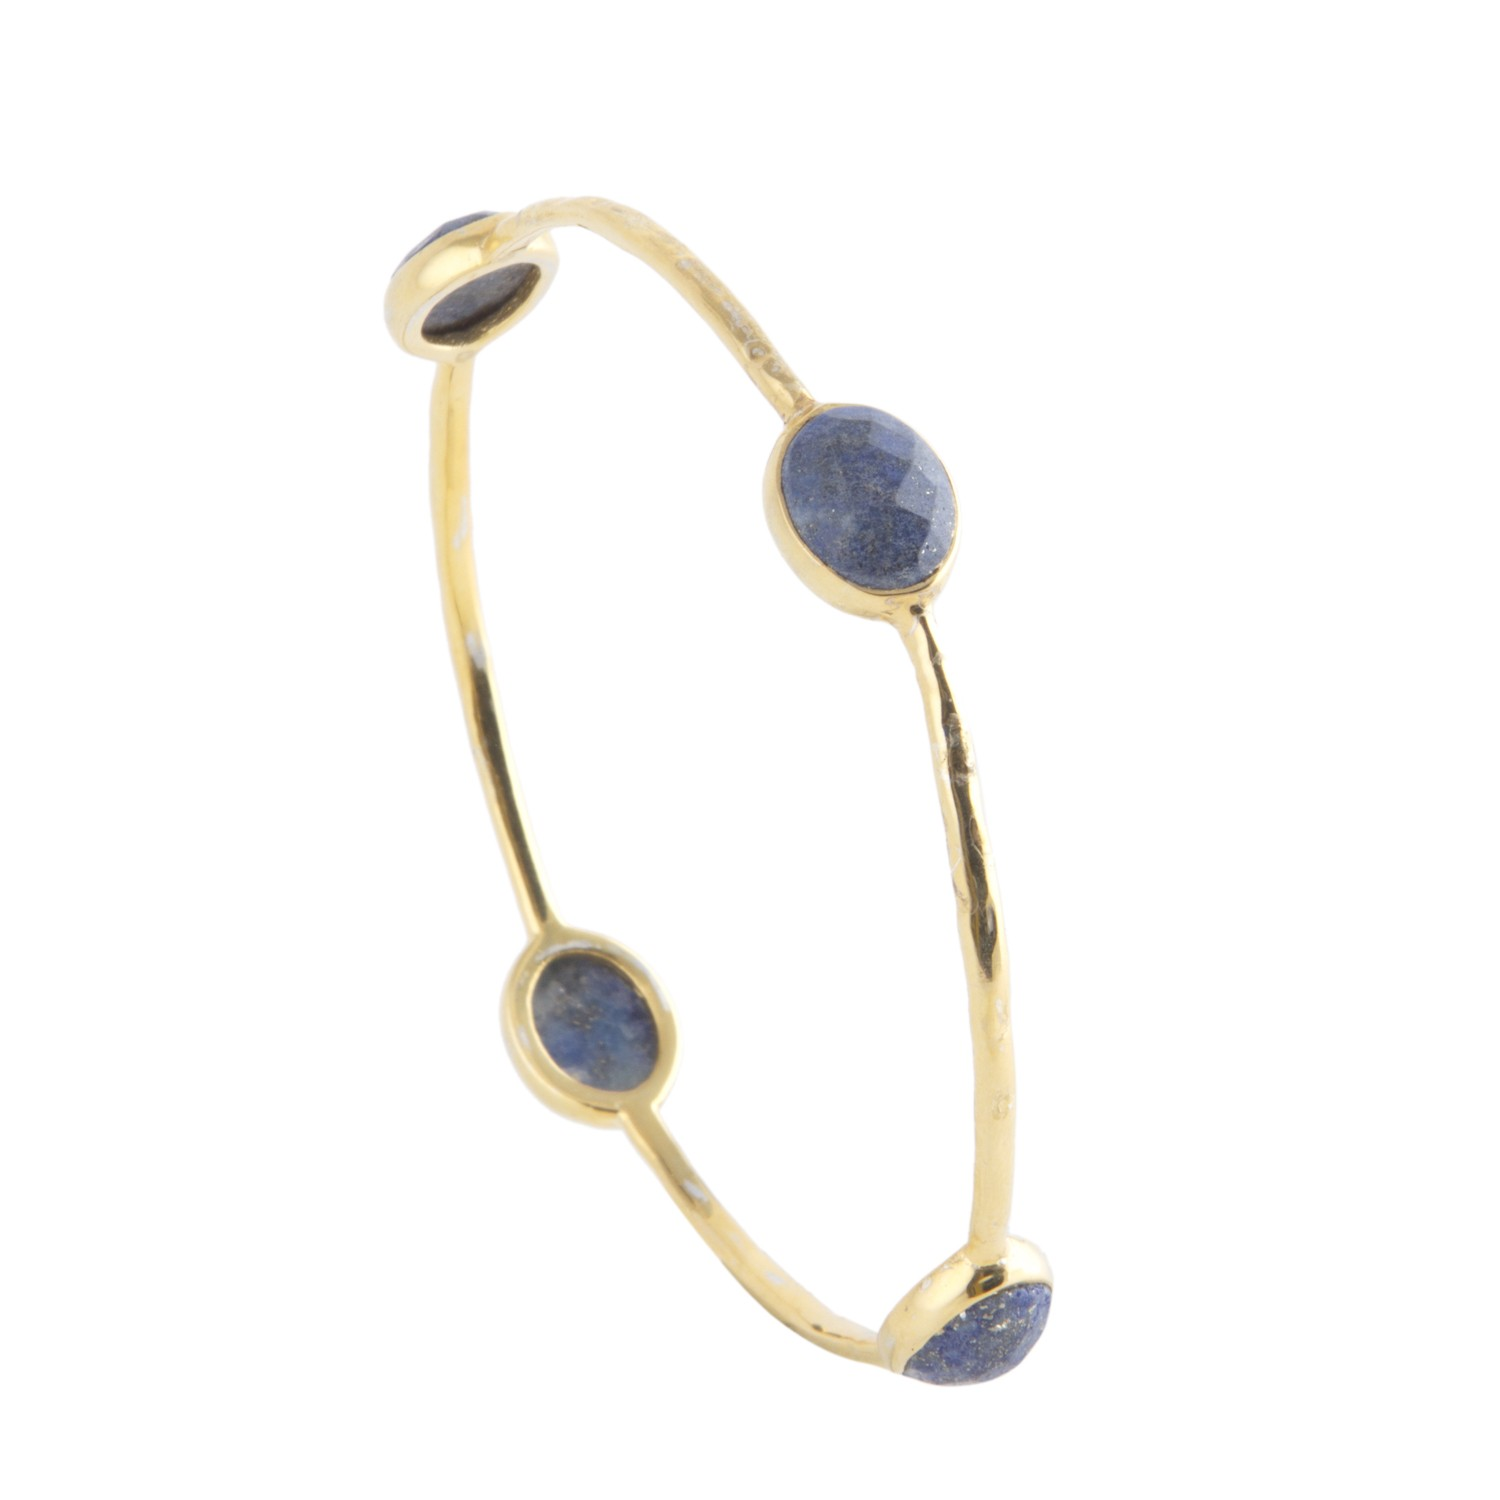 4b82a4fe31f34 Where Does The Name 'Tennis Bracelet' Come From? - eLiveStory